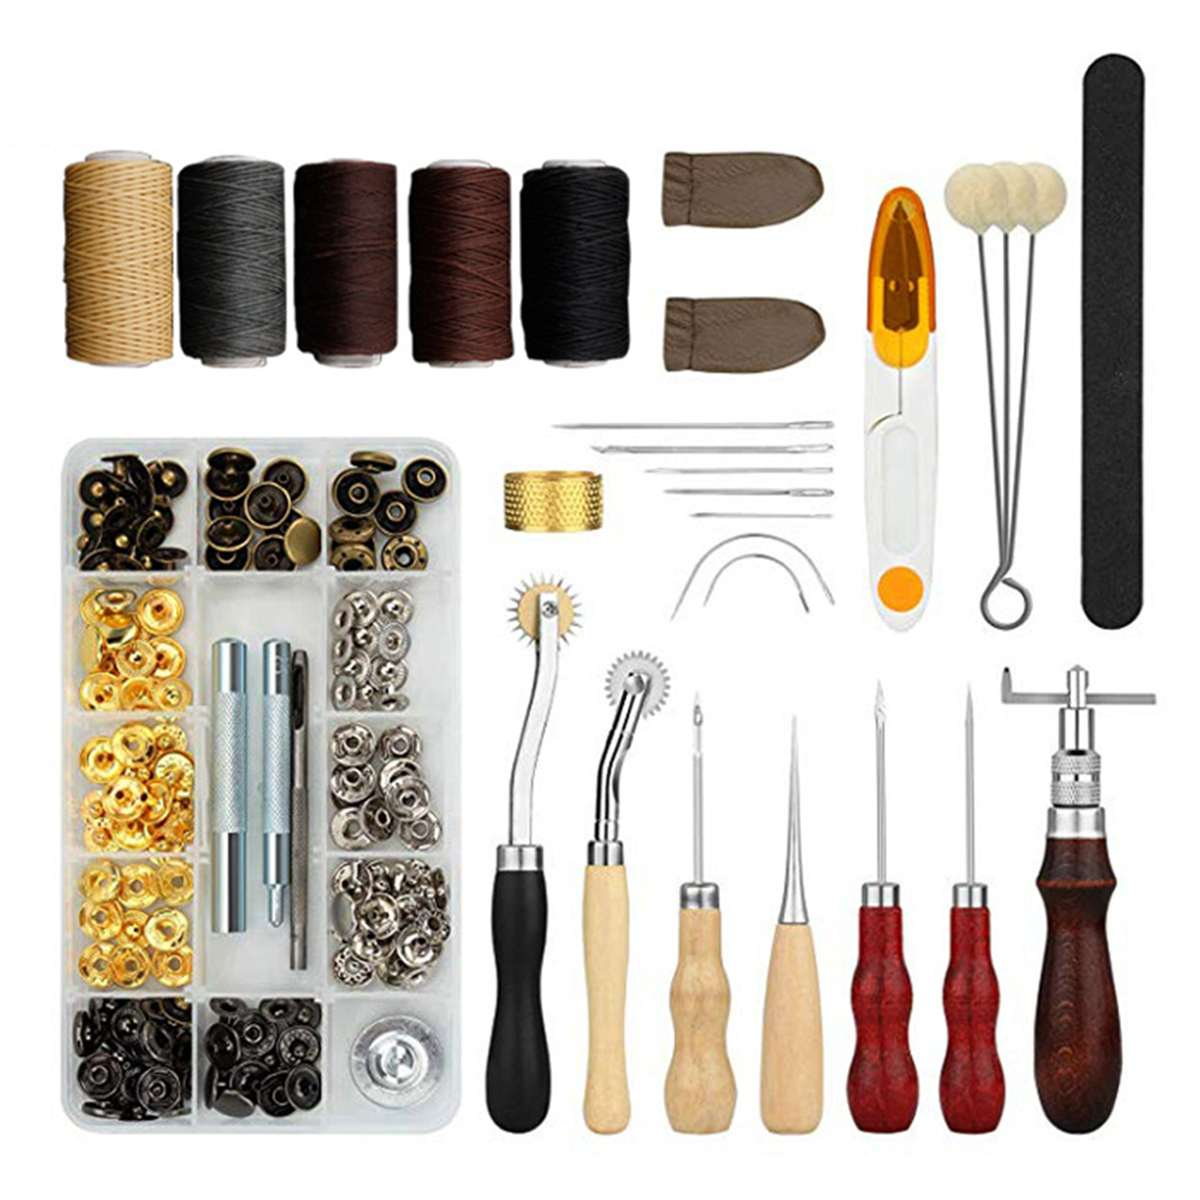 Leather Craft Tools Kit Hand Sewing Stitching Punch Carving Work Single Cap Rivets Press Stud Button Leathercraft Accessories